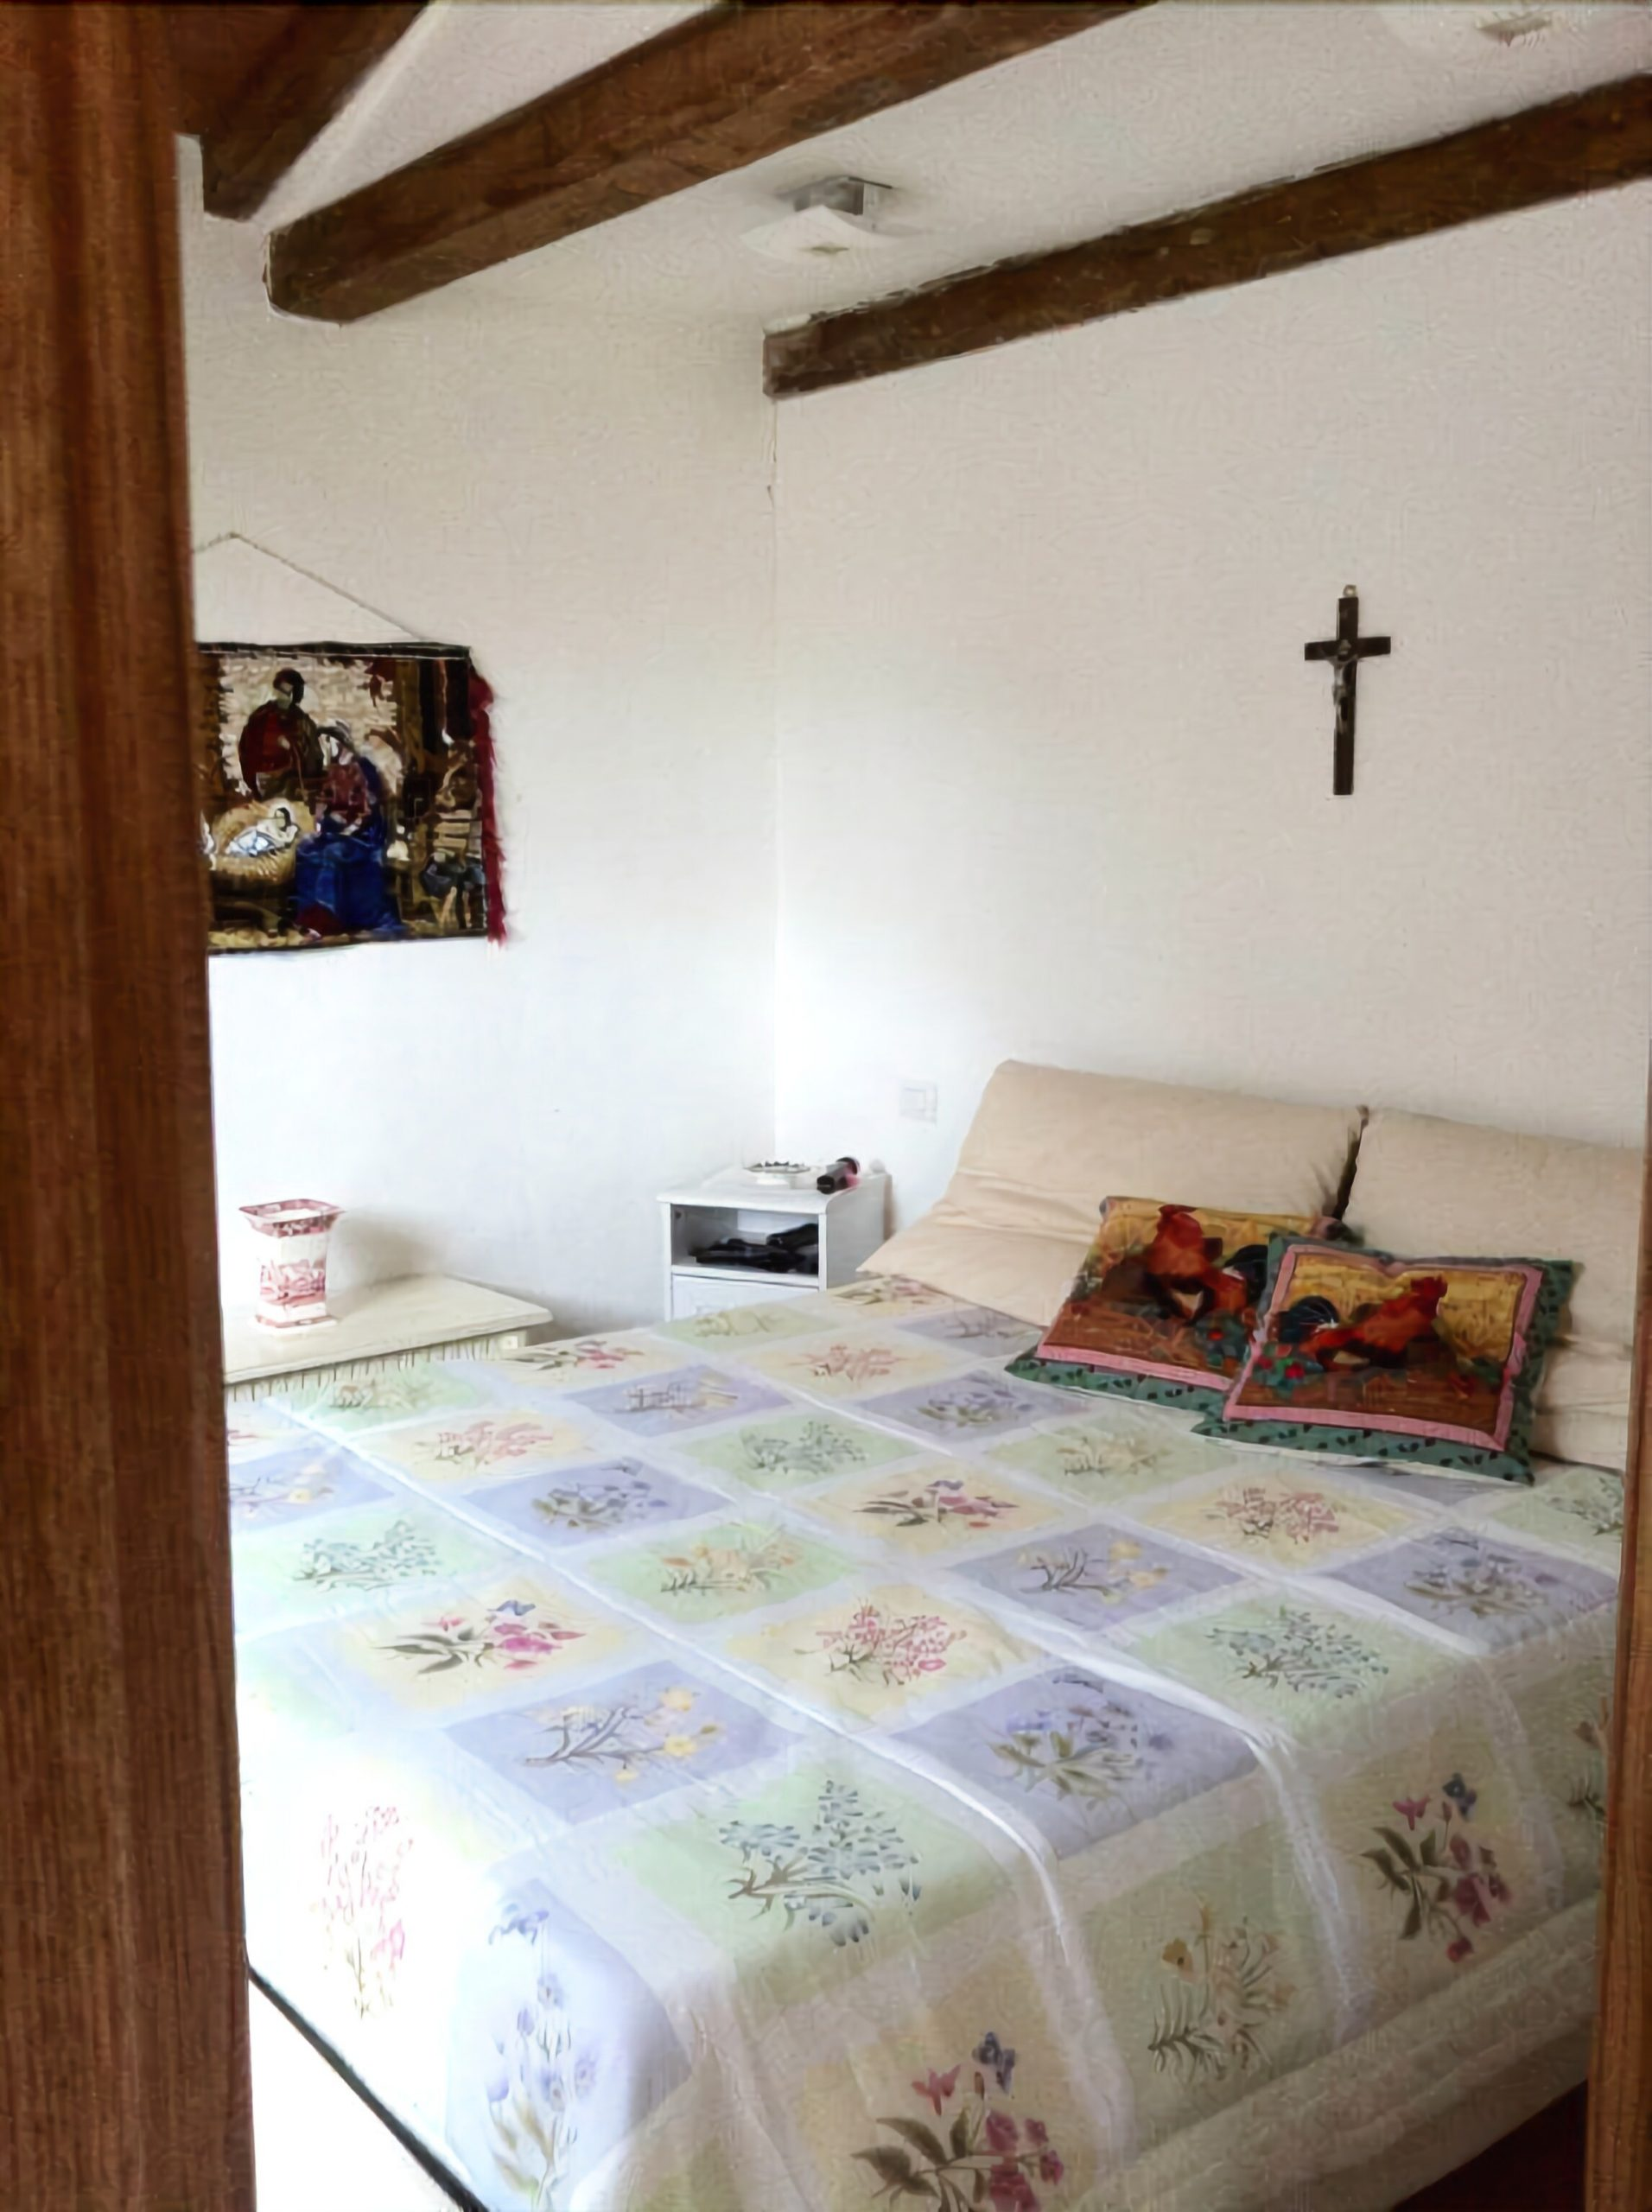 Porto Ercole, Tuscany, Maximum Privacy AND Relaxation, IN Hill, Close TO THE SEA